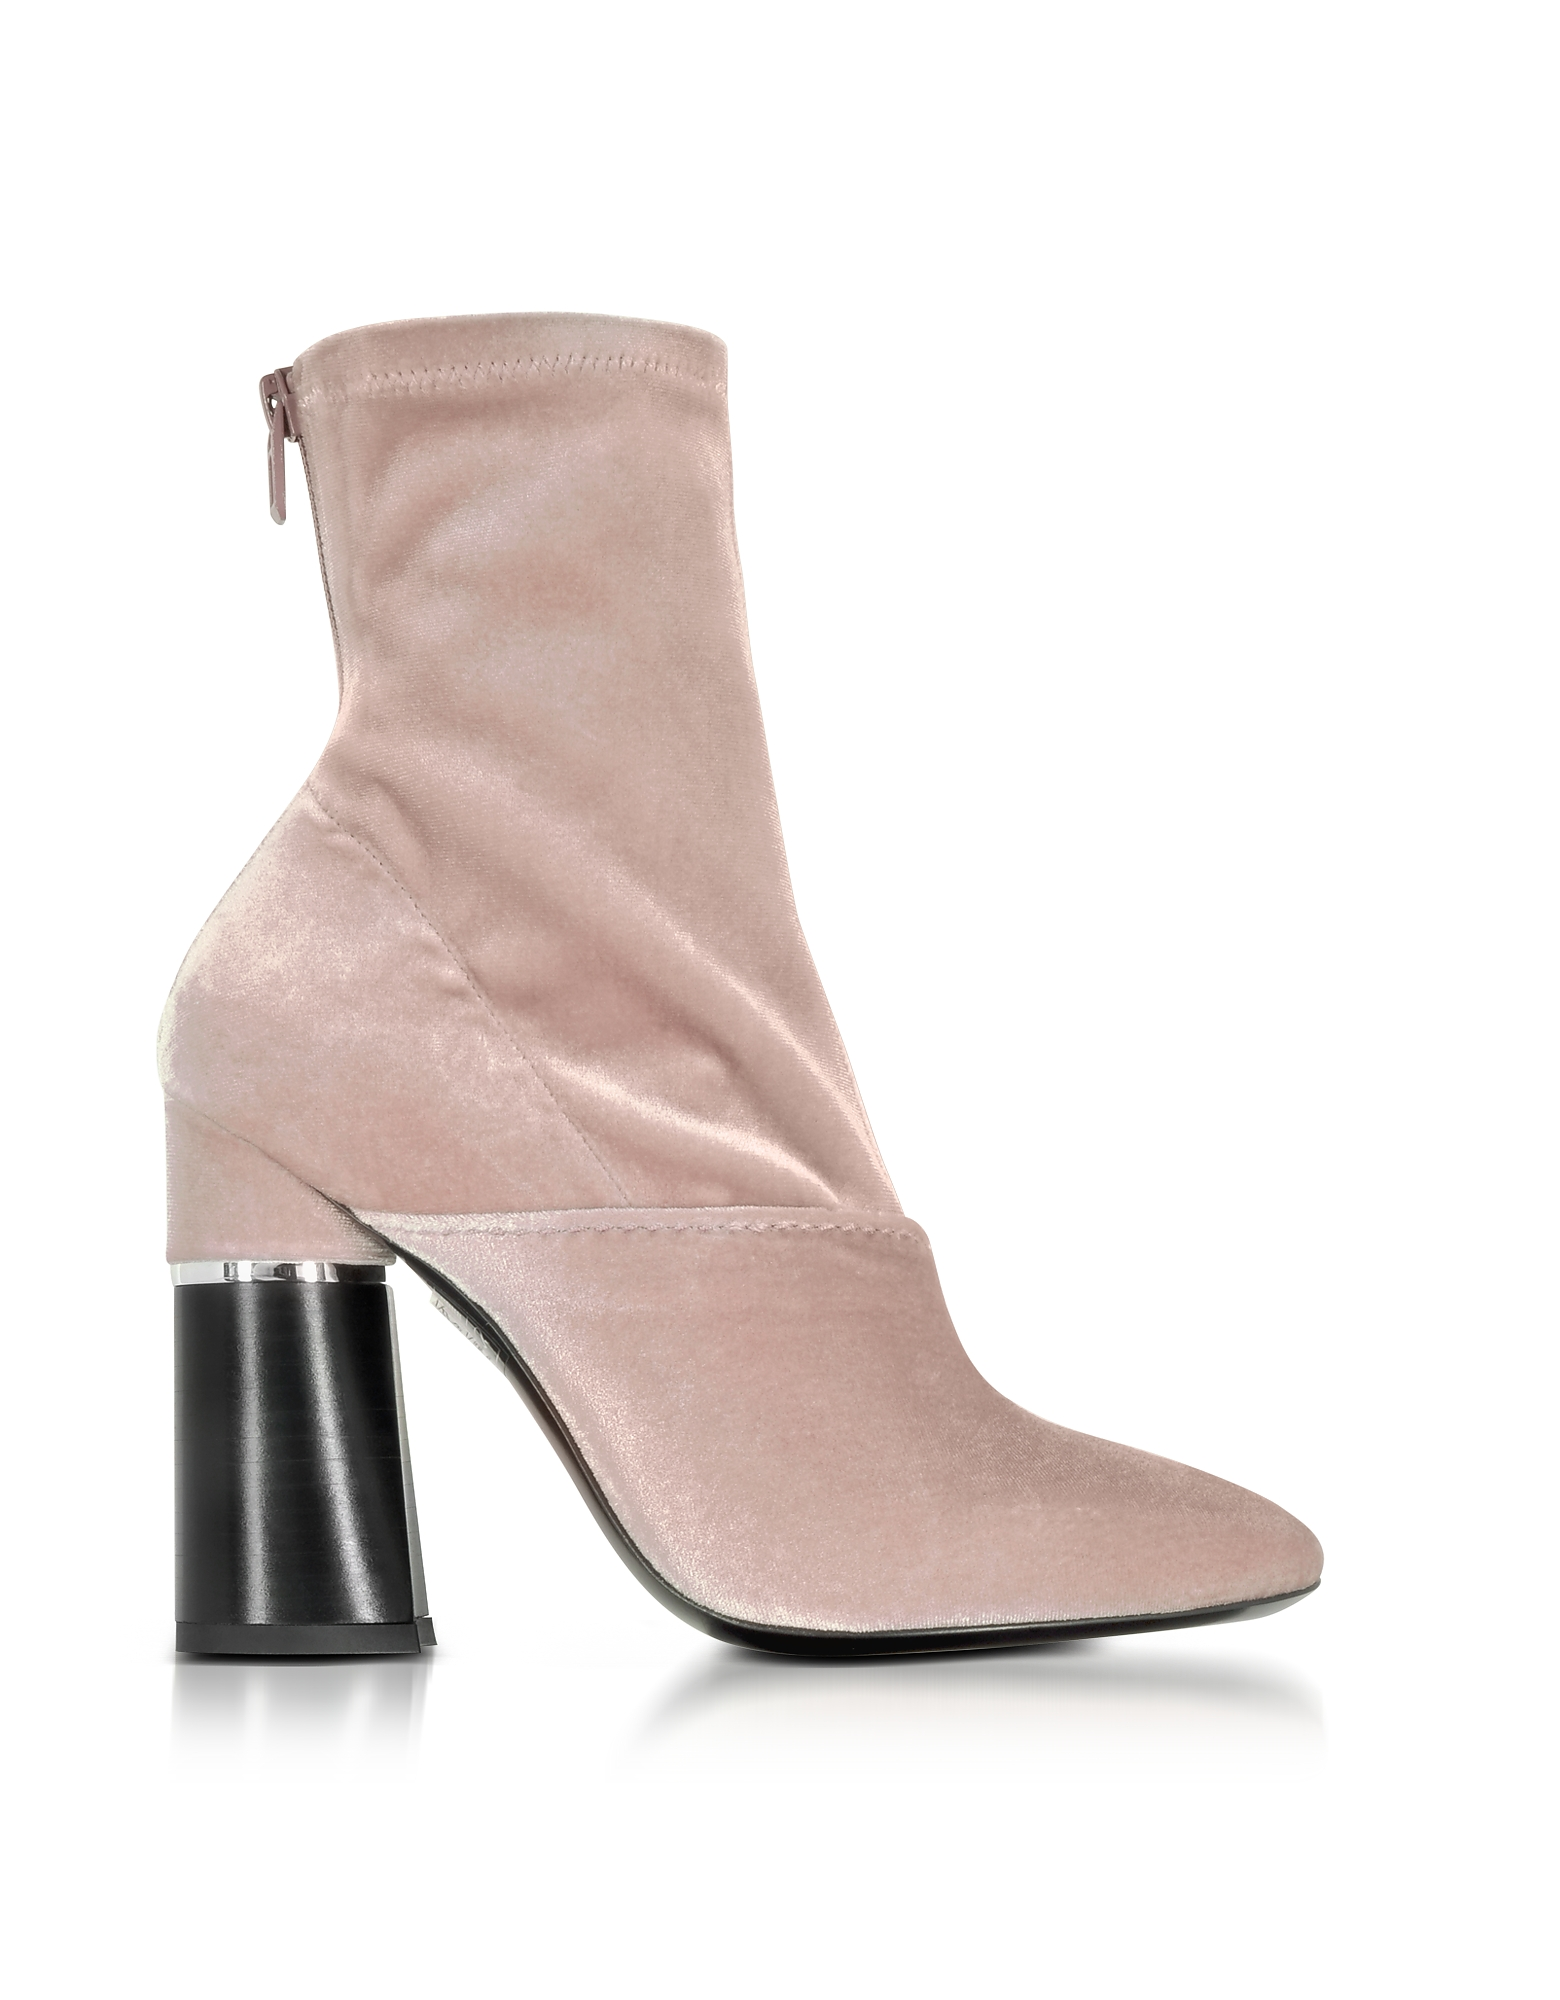 3.1 Phillip Lim Shoes, Kyoto Blush Velvet Stretch High Heel Ankle Boots